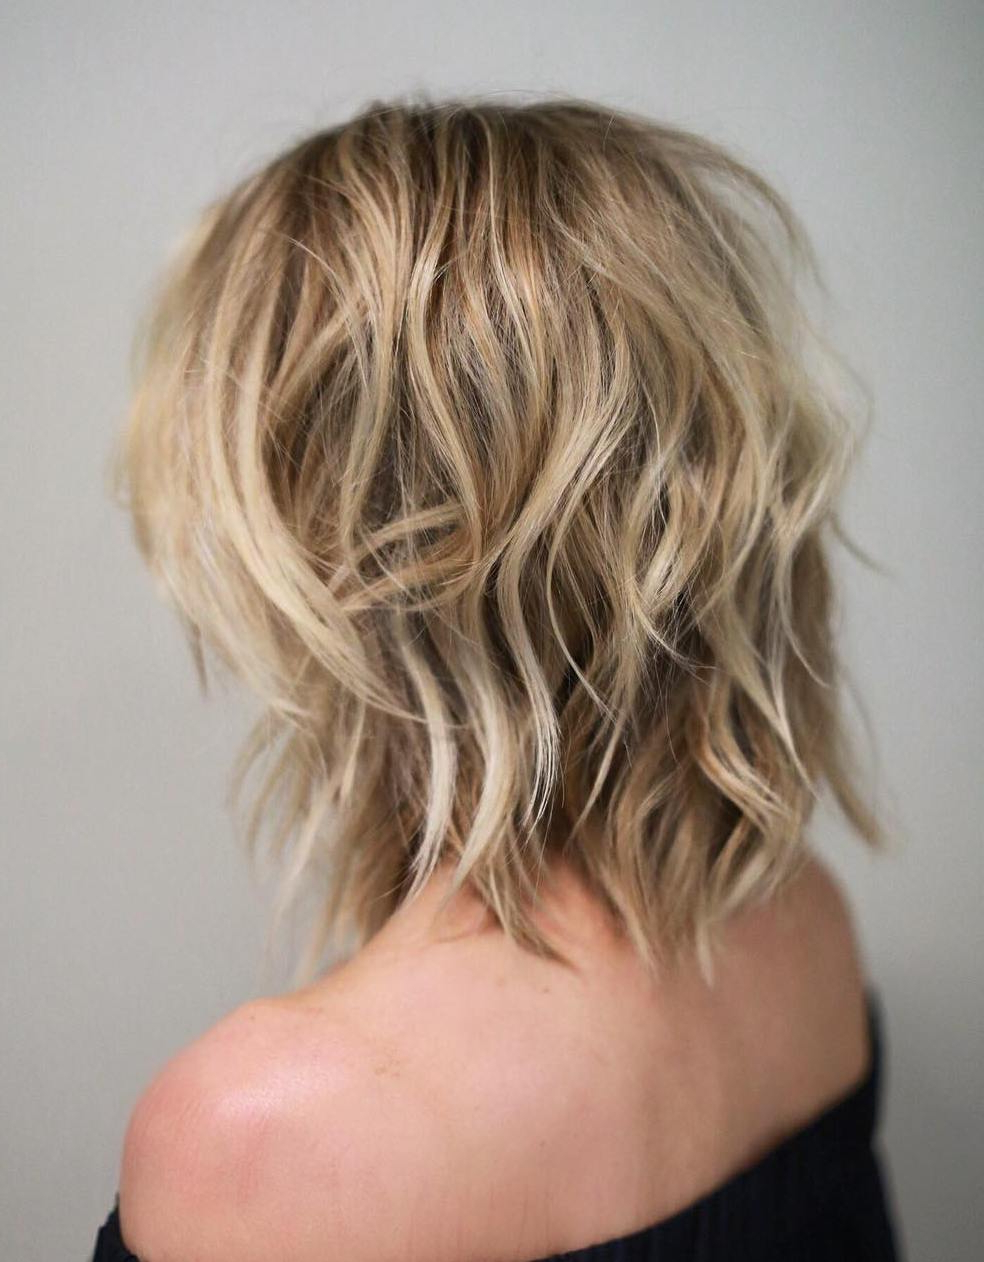 Shag Haircuts And Hairstyles In 2019 — Therighthairstyles Within Jaw Length Shaggy Bob Hairstyles (View 17 of 20)